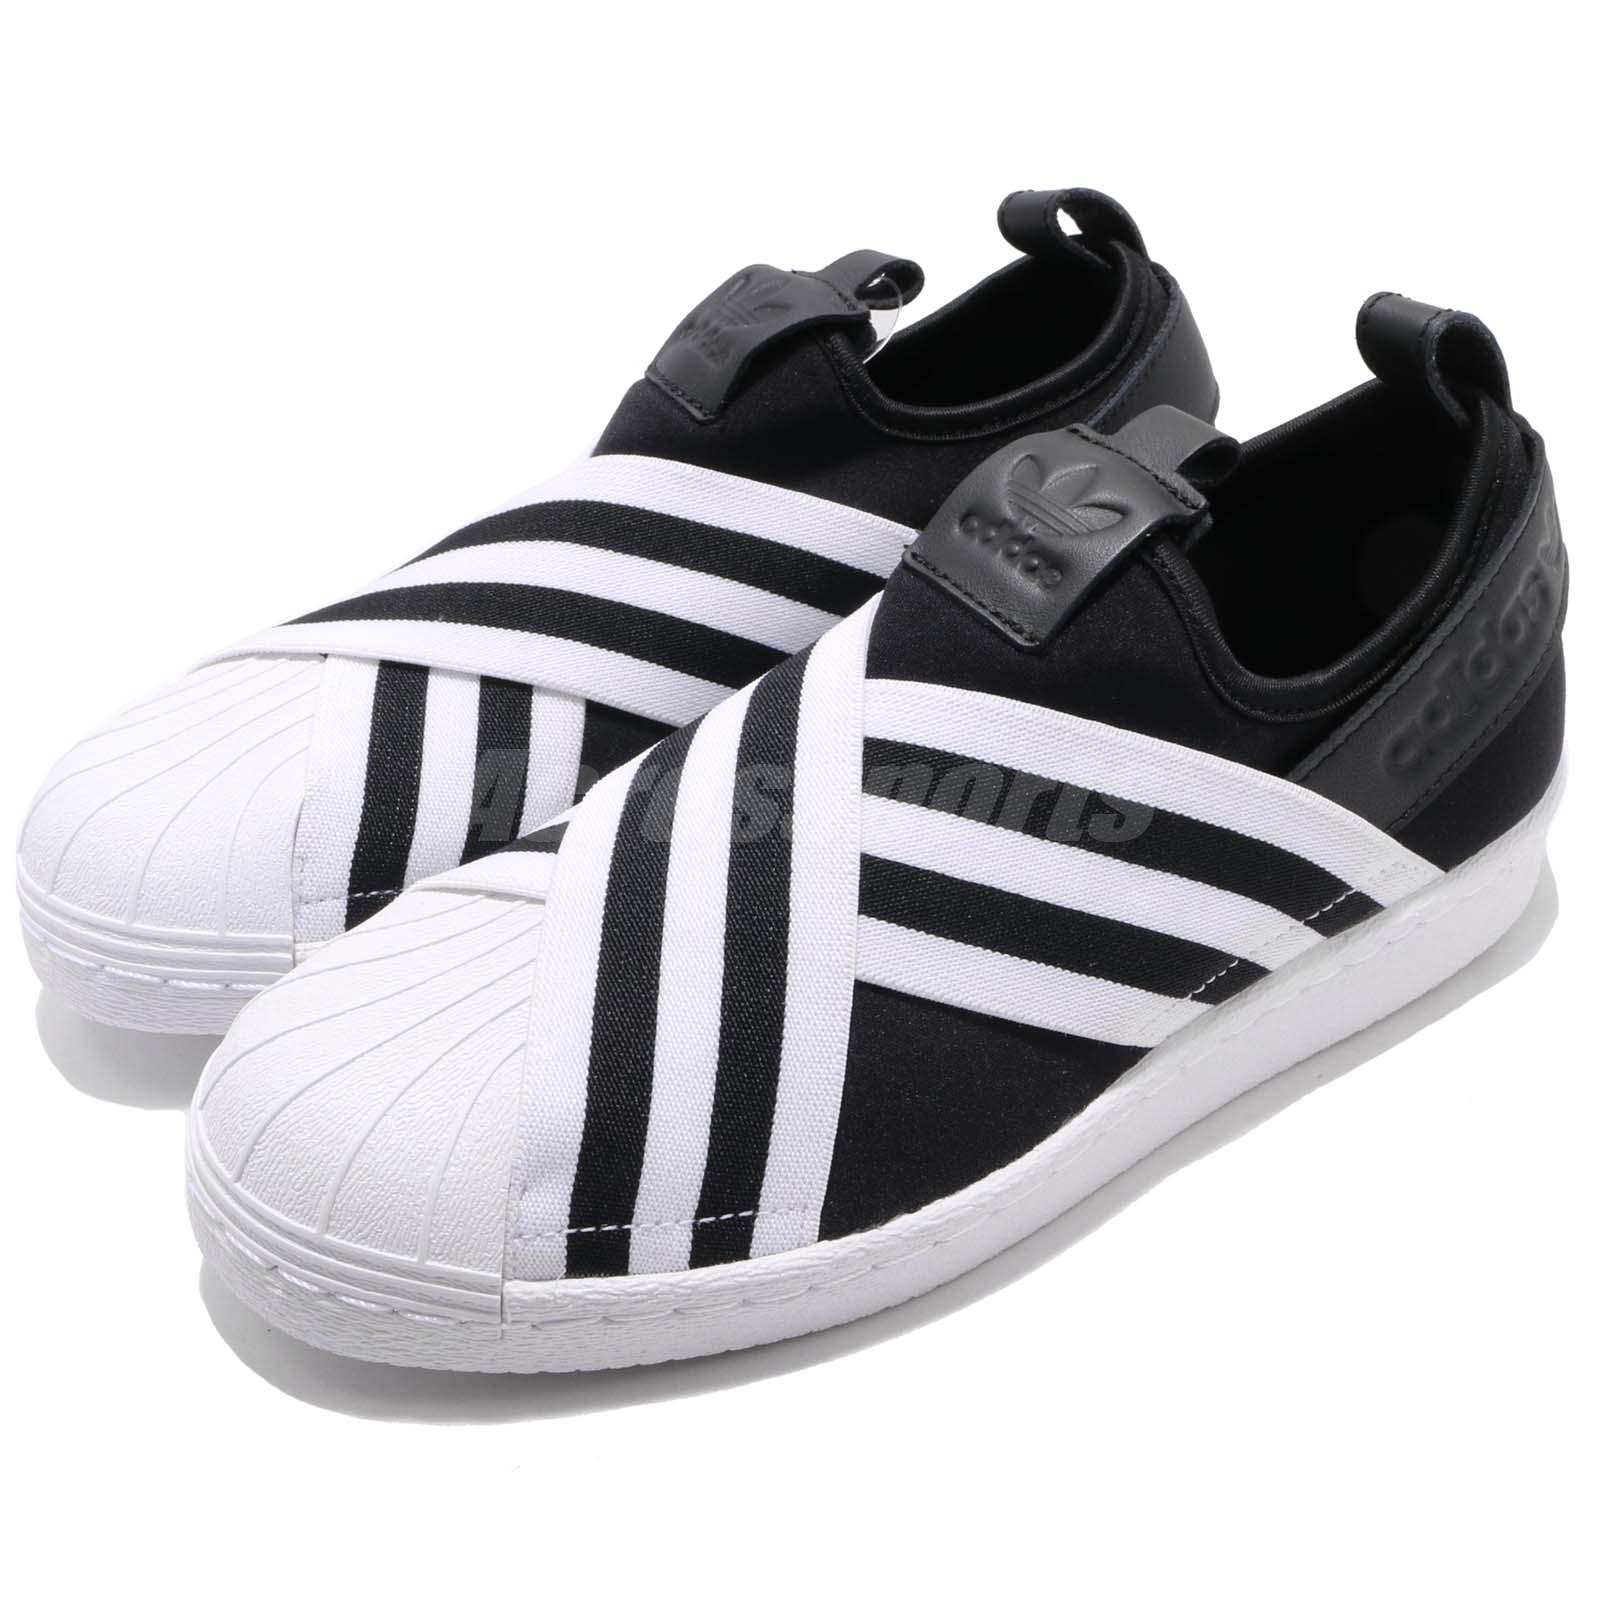 Details about adidas Originals Superstar Slip On W Core Black Cloud White  Women Shoes AC8582 92a42f281